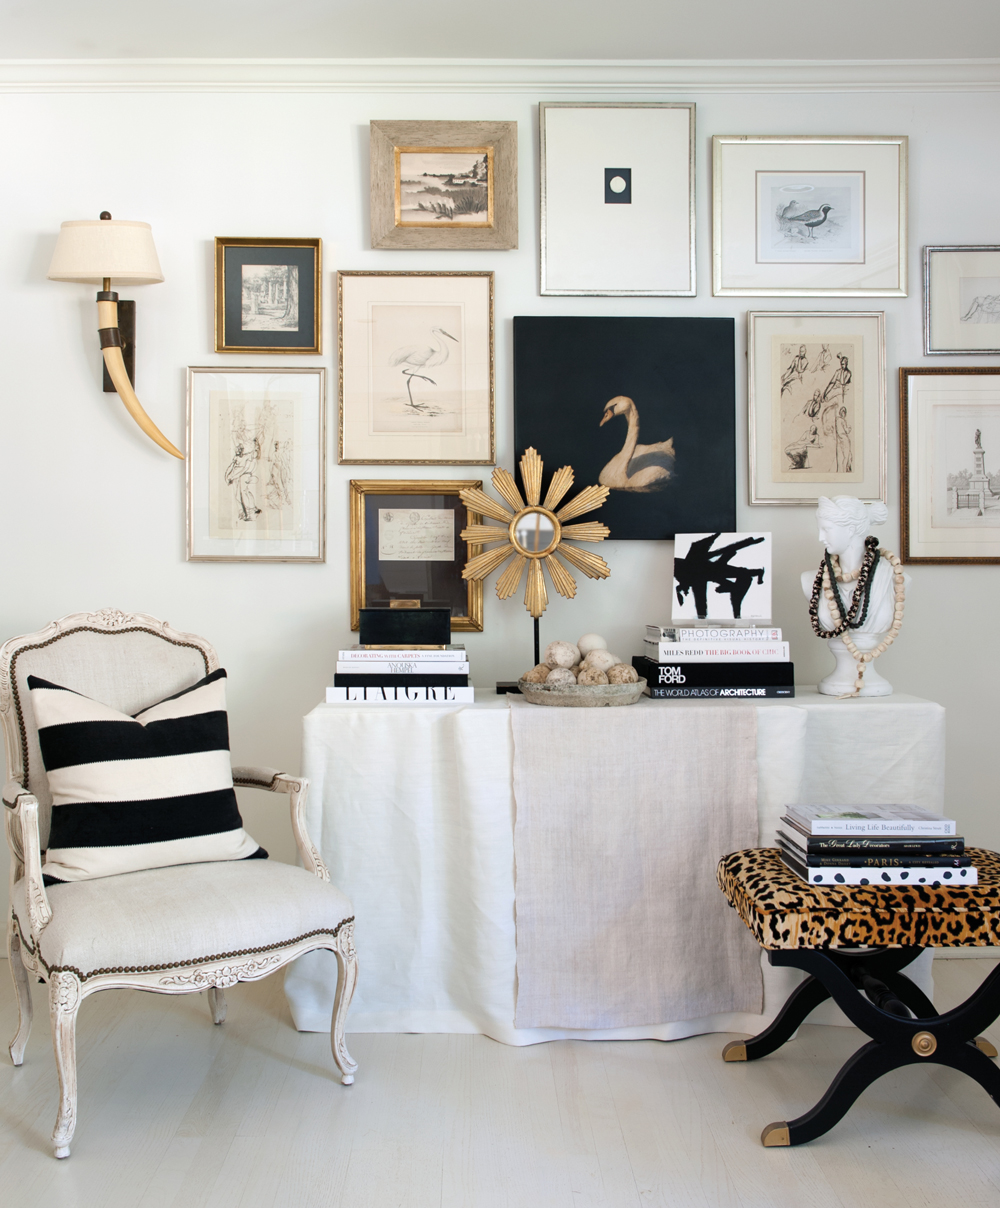 Interior Designer And Blogger Sherry Hart Takes Decorating But Not